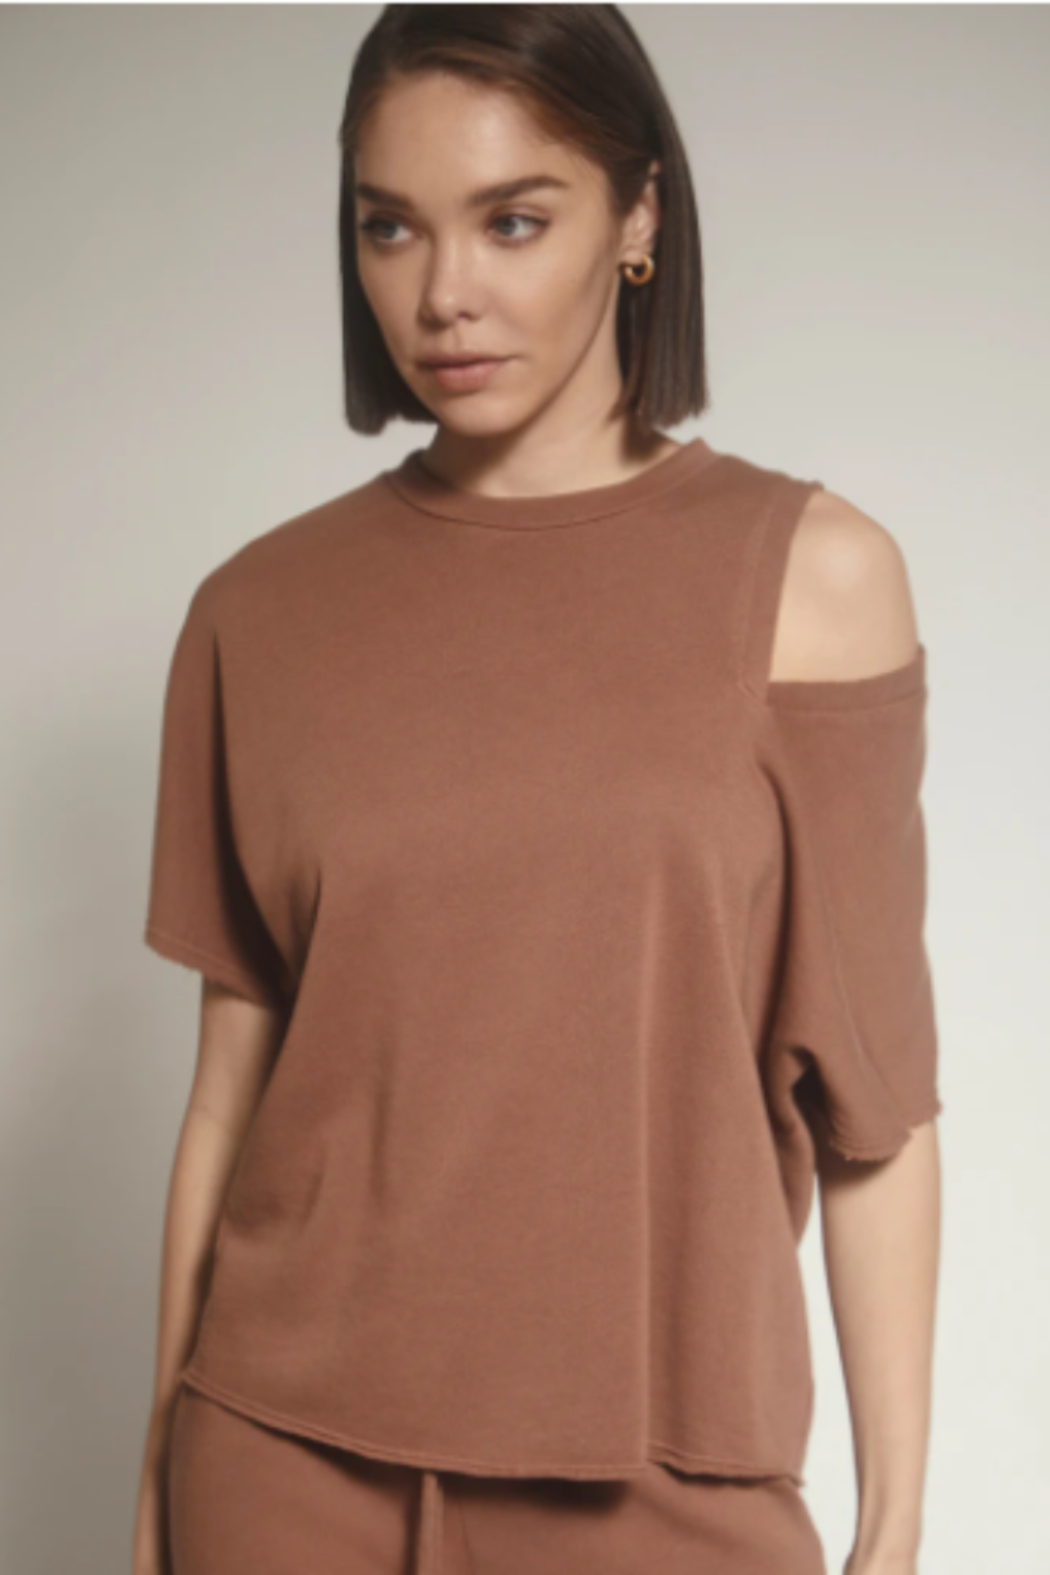 lanston sport One shoulder cut out Tee - Main Image